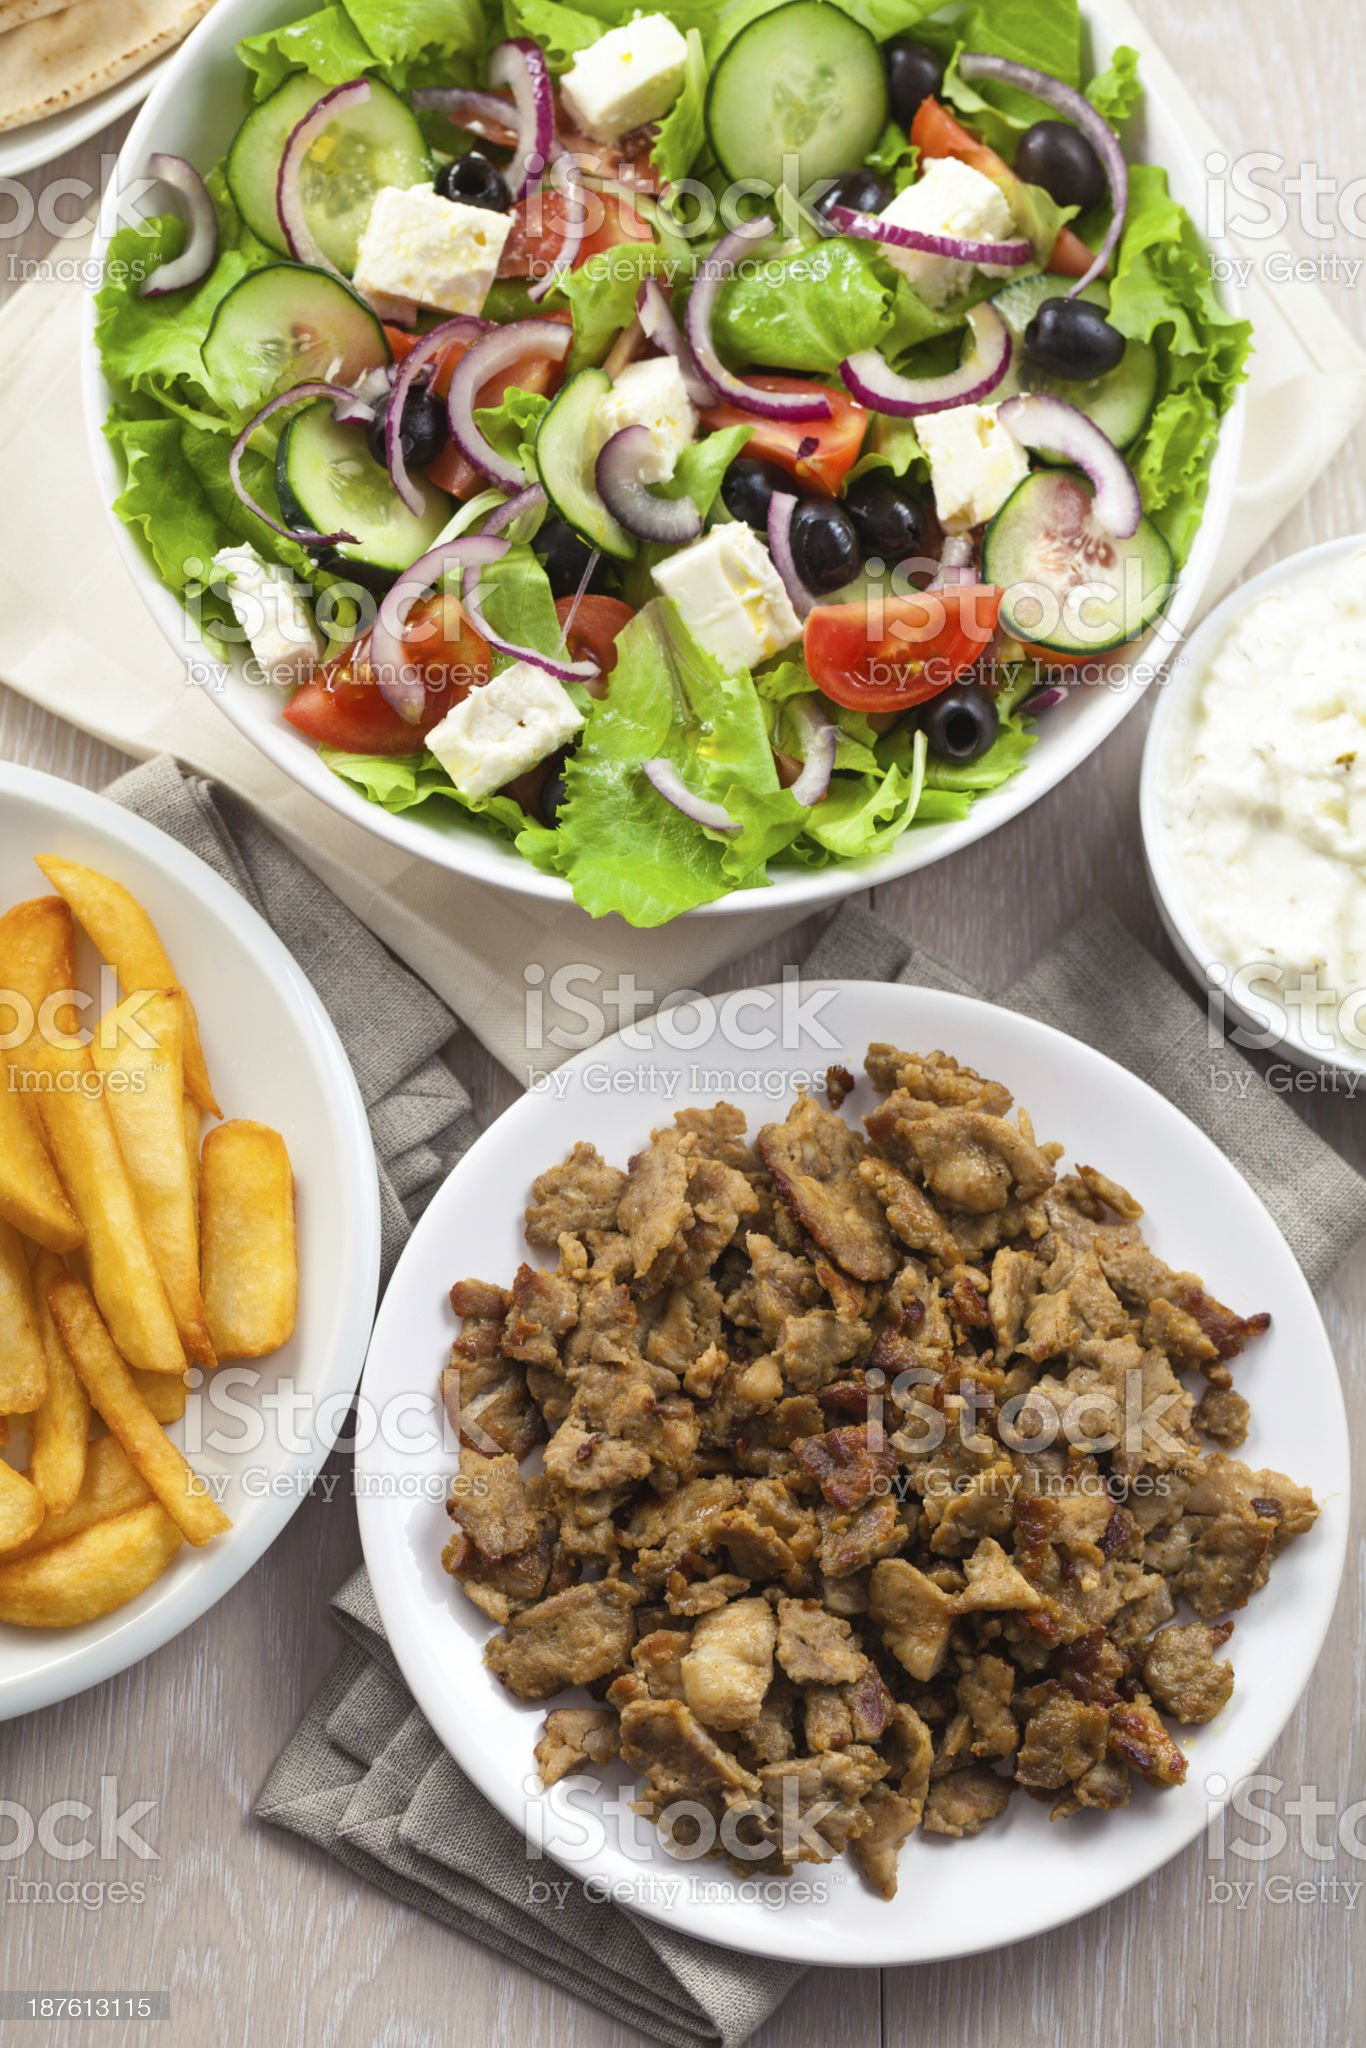 Greek Salad with Gyros and Fries royalty-free stock photo